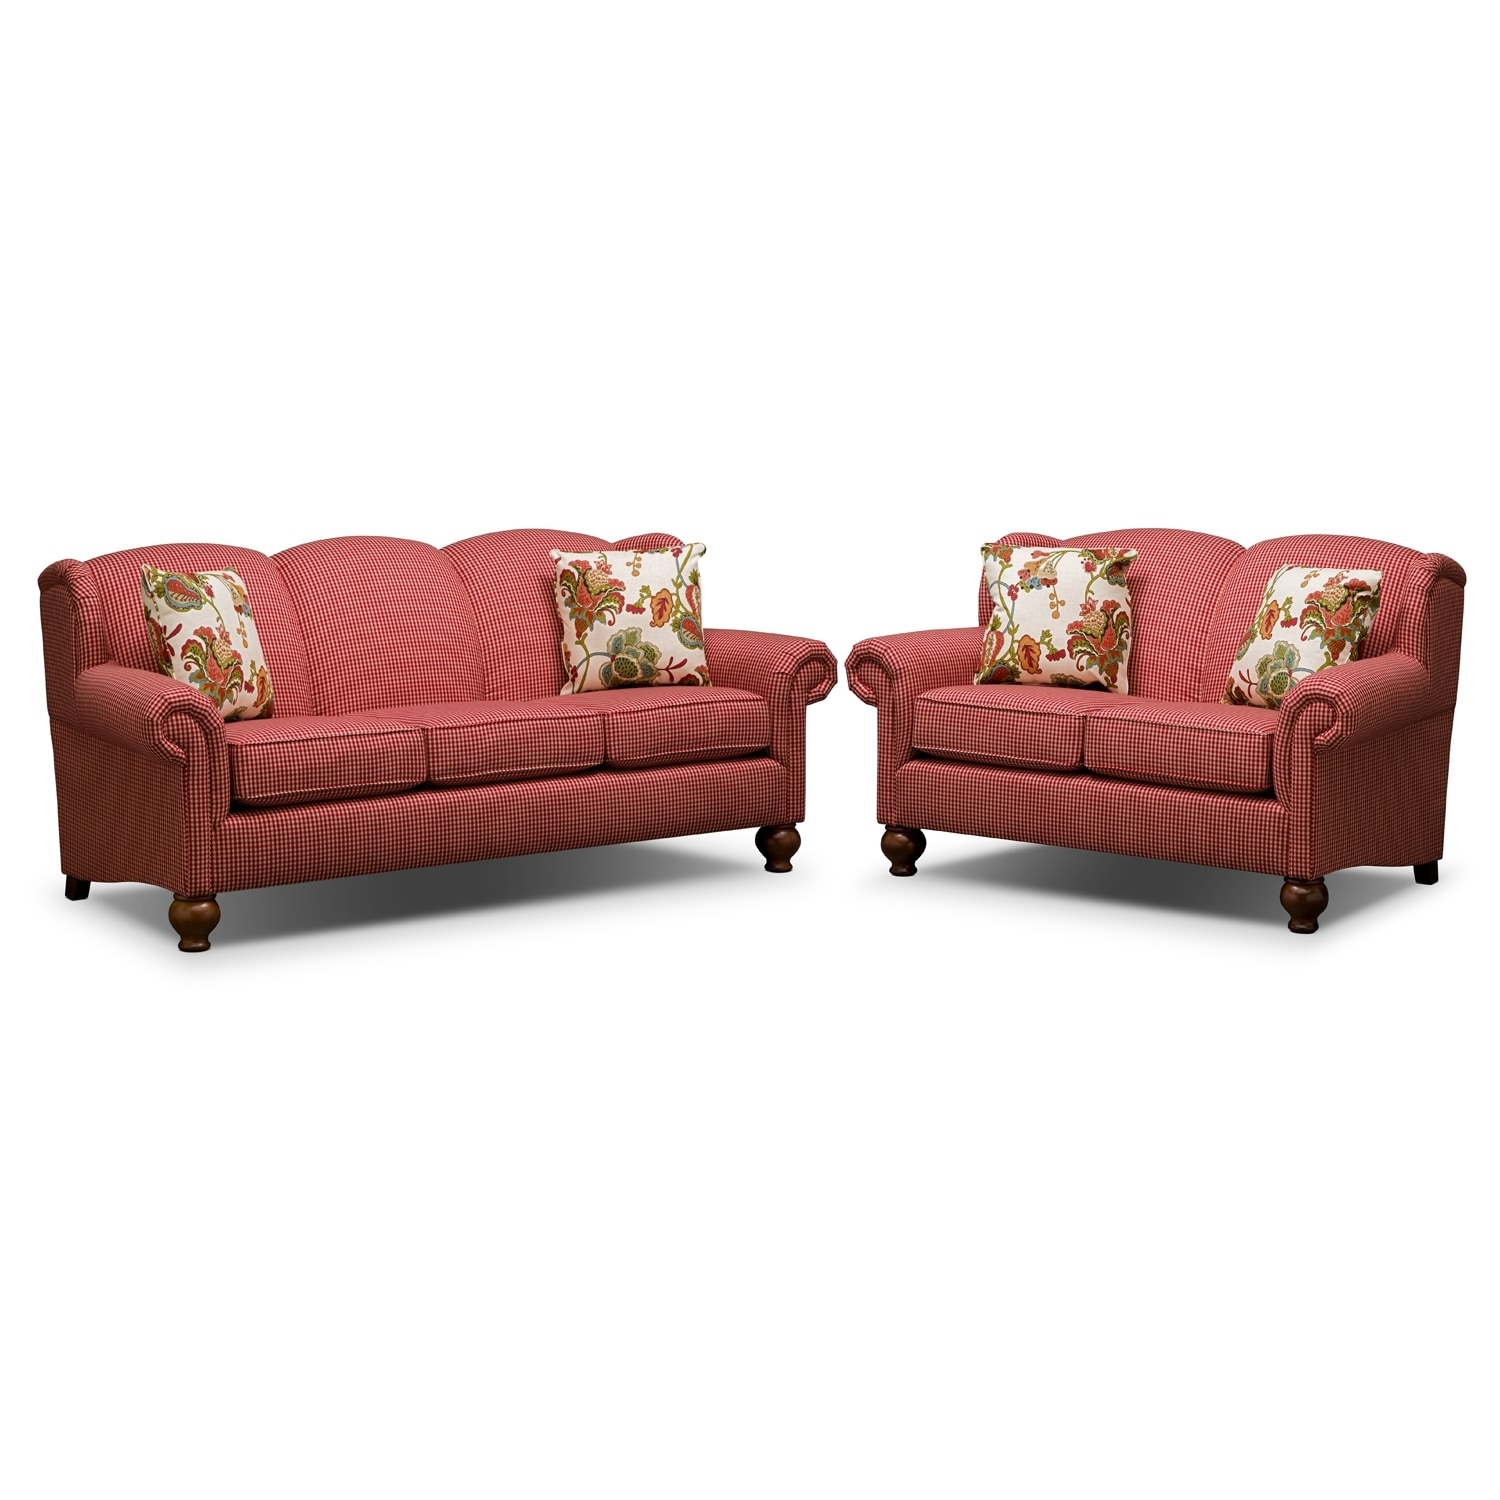 Living Room Furniture - Charlotte 2 Pc. Living Room